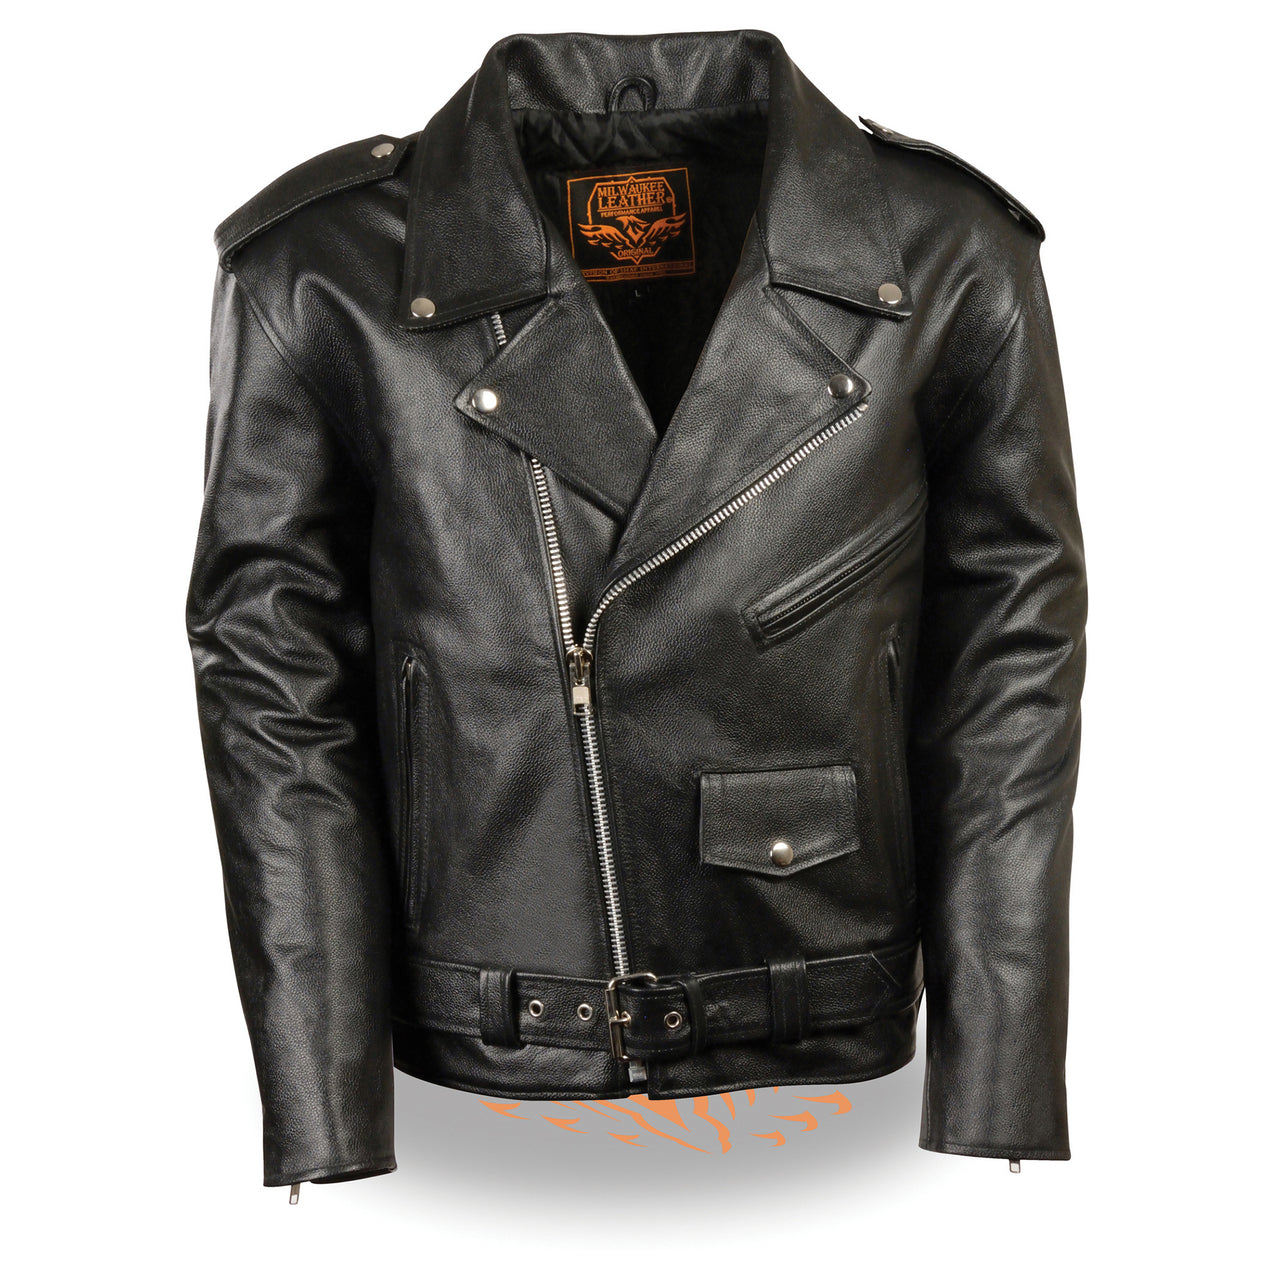 Youth Sized Traditional Style Police Biker Jacket - HighwayLeather